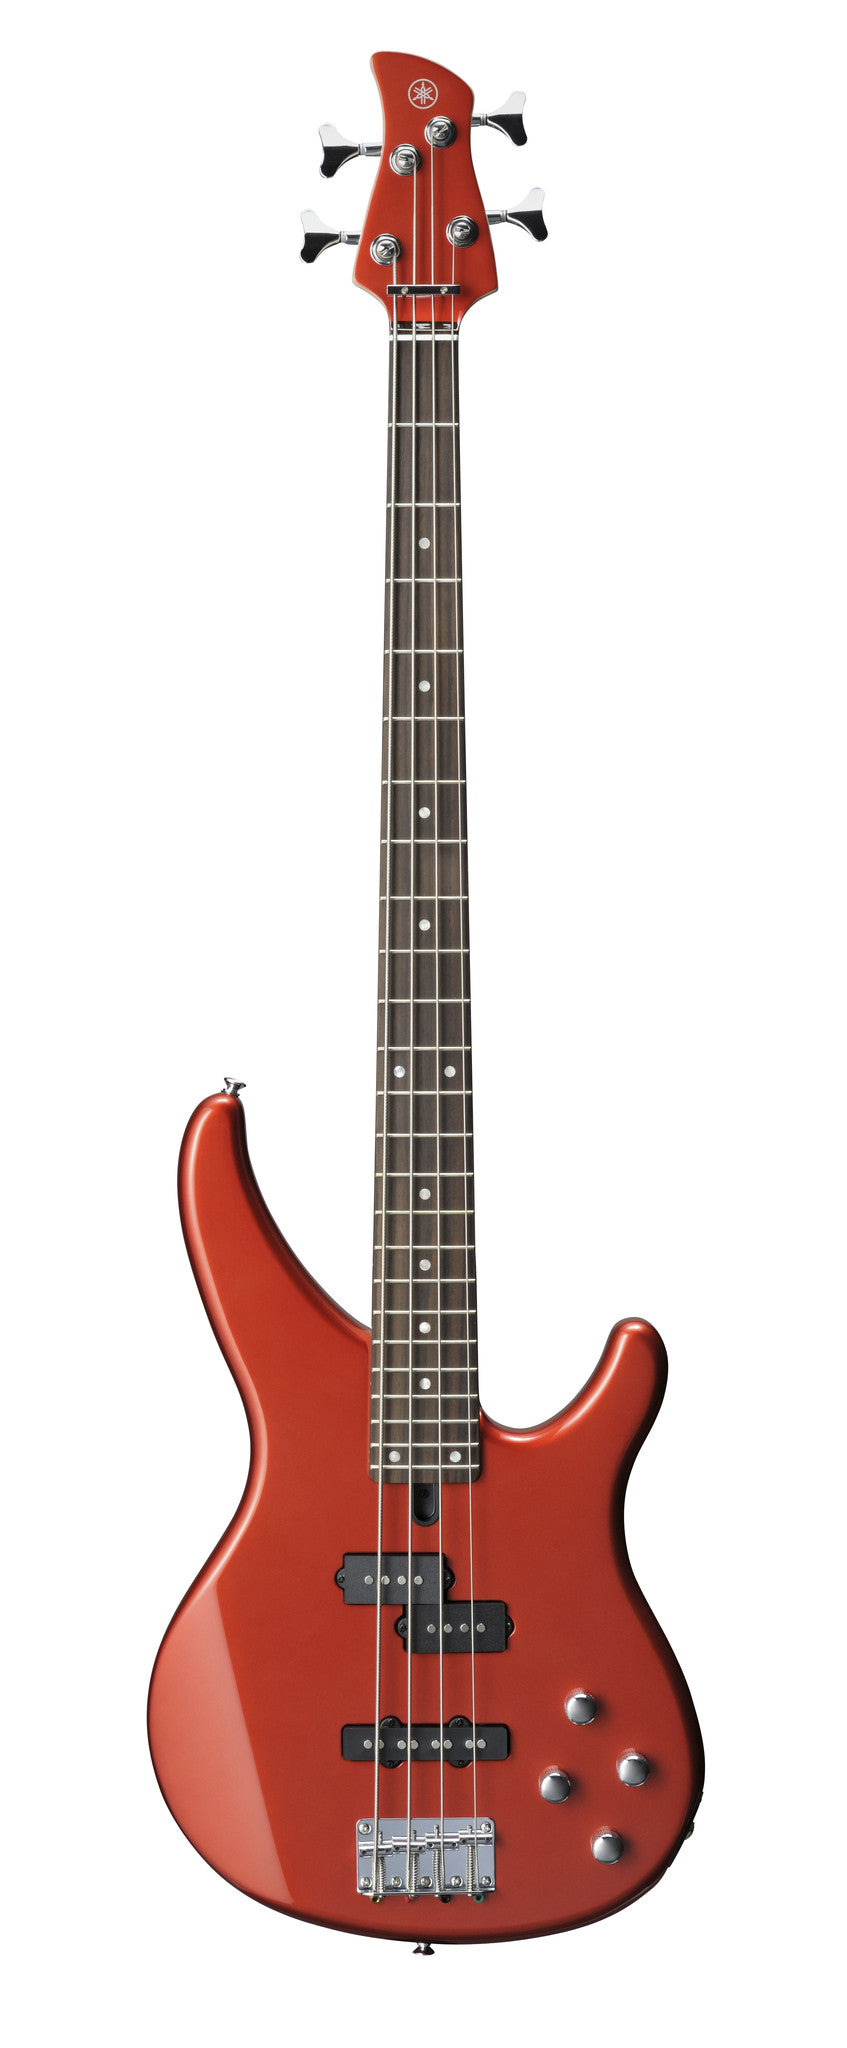 Yamaha TRBX204 4-String Bass Guitar Bright Red Metallic